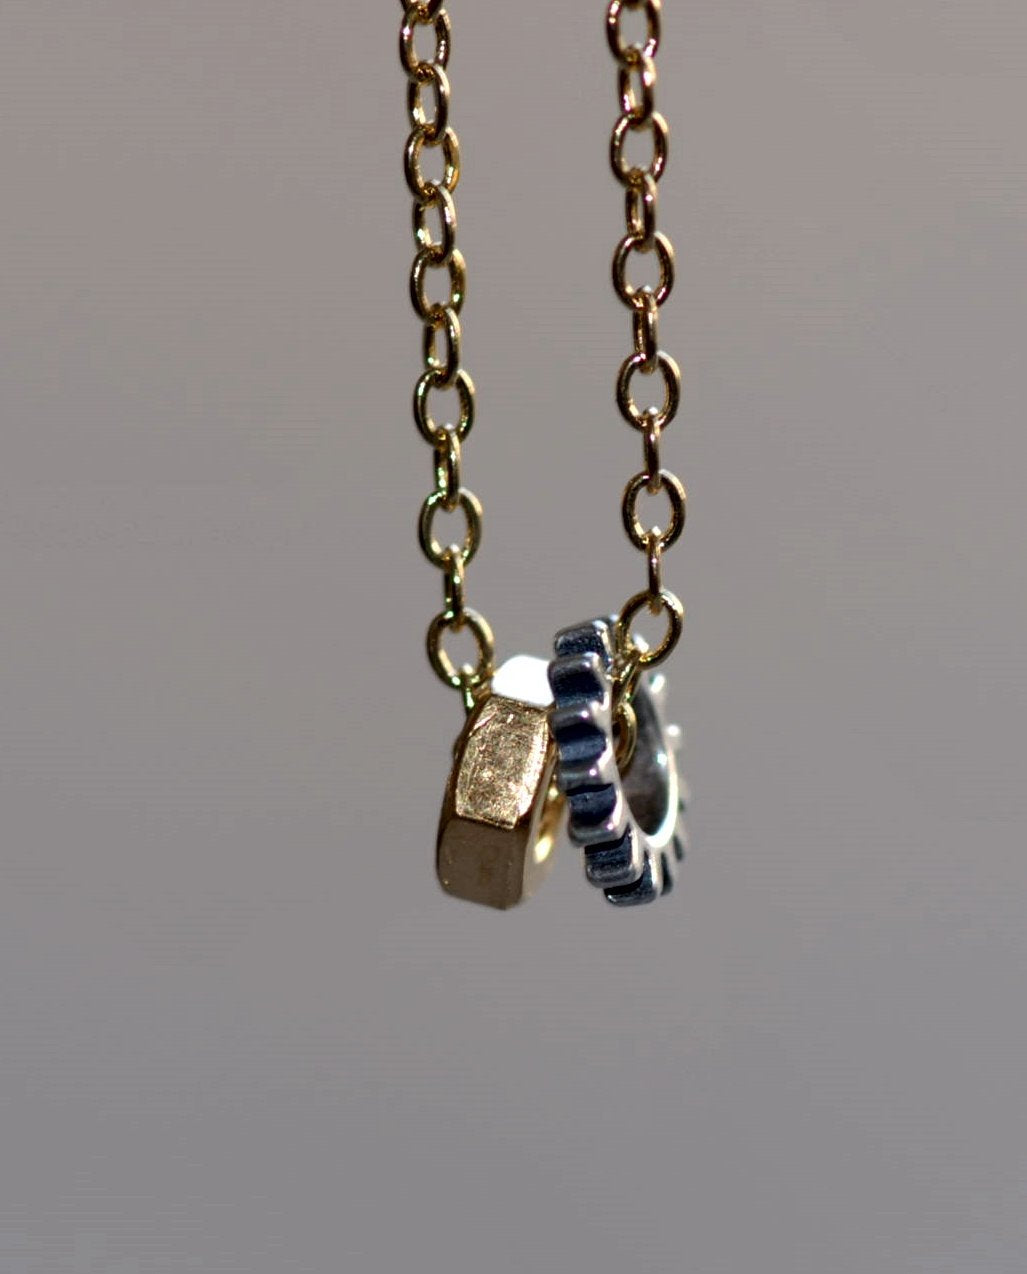 Naughty-Gold & Silver-Necklace